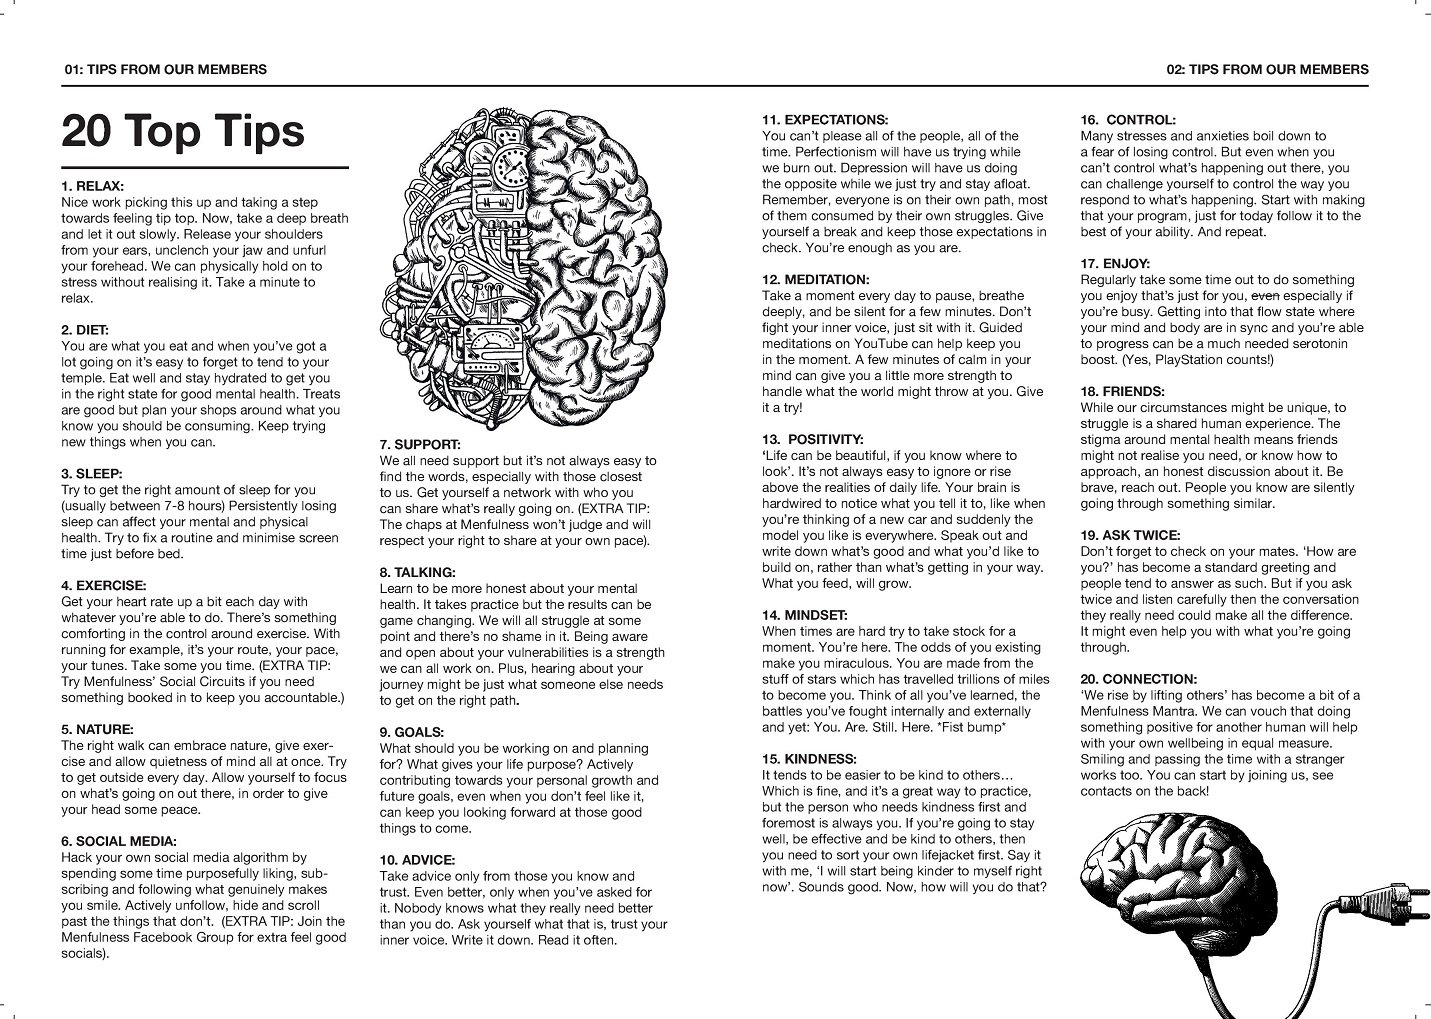 Menfulness Manual Inner - 20 top tips for wellbeing